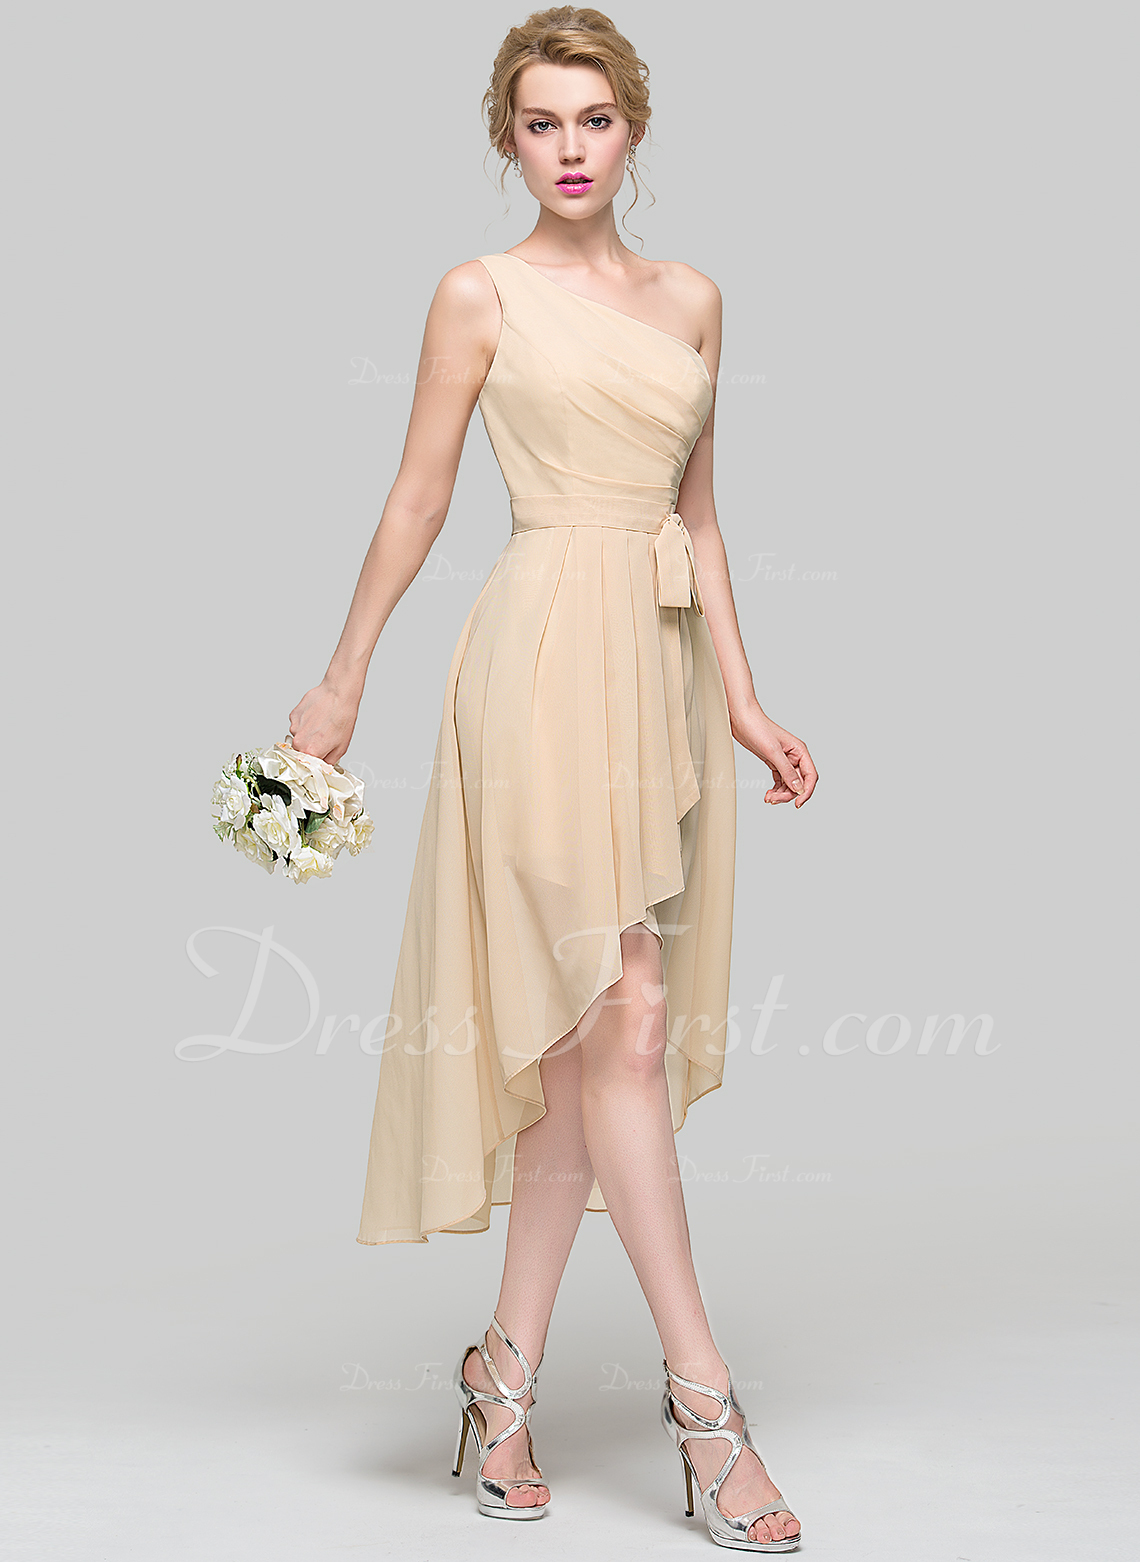 19493dadb0126 Loading zoom. Loading. Color: Champagne. A-Line/Princess One-Shoulder  Asymmetrical Chiffon Bridesmaid Dress With Ruffle Bow(s) Cascading ...